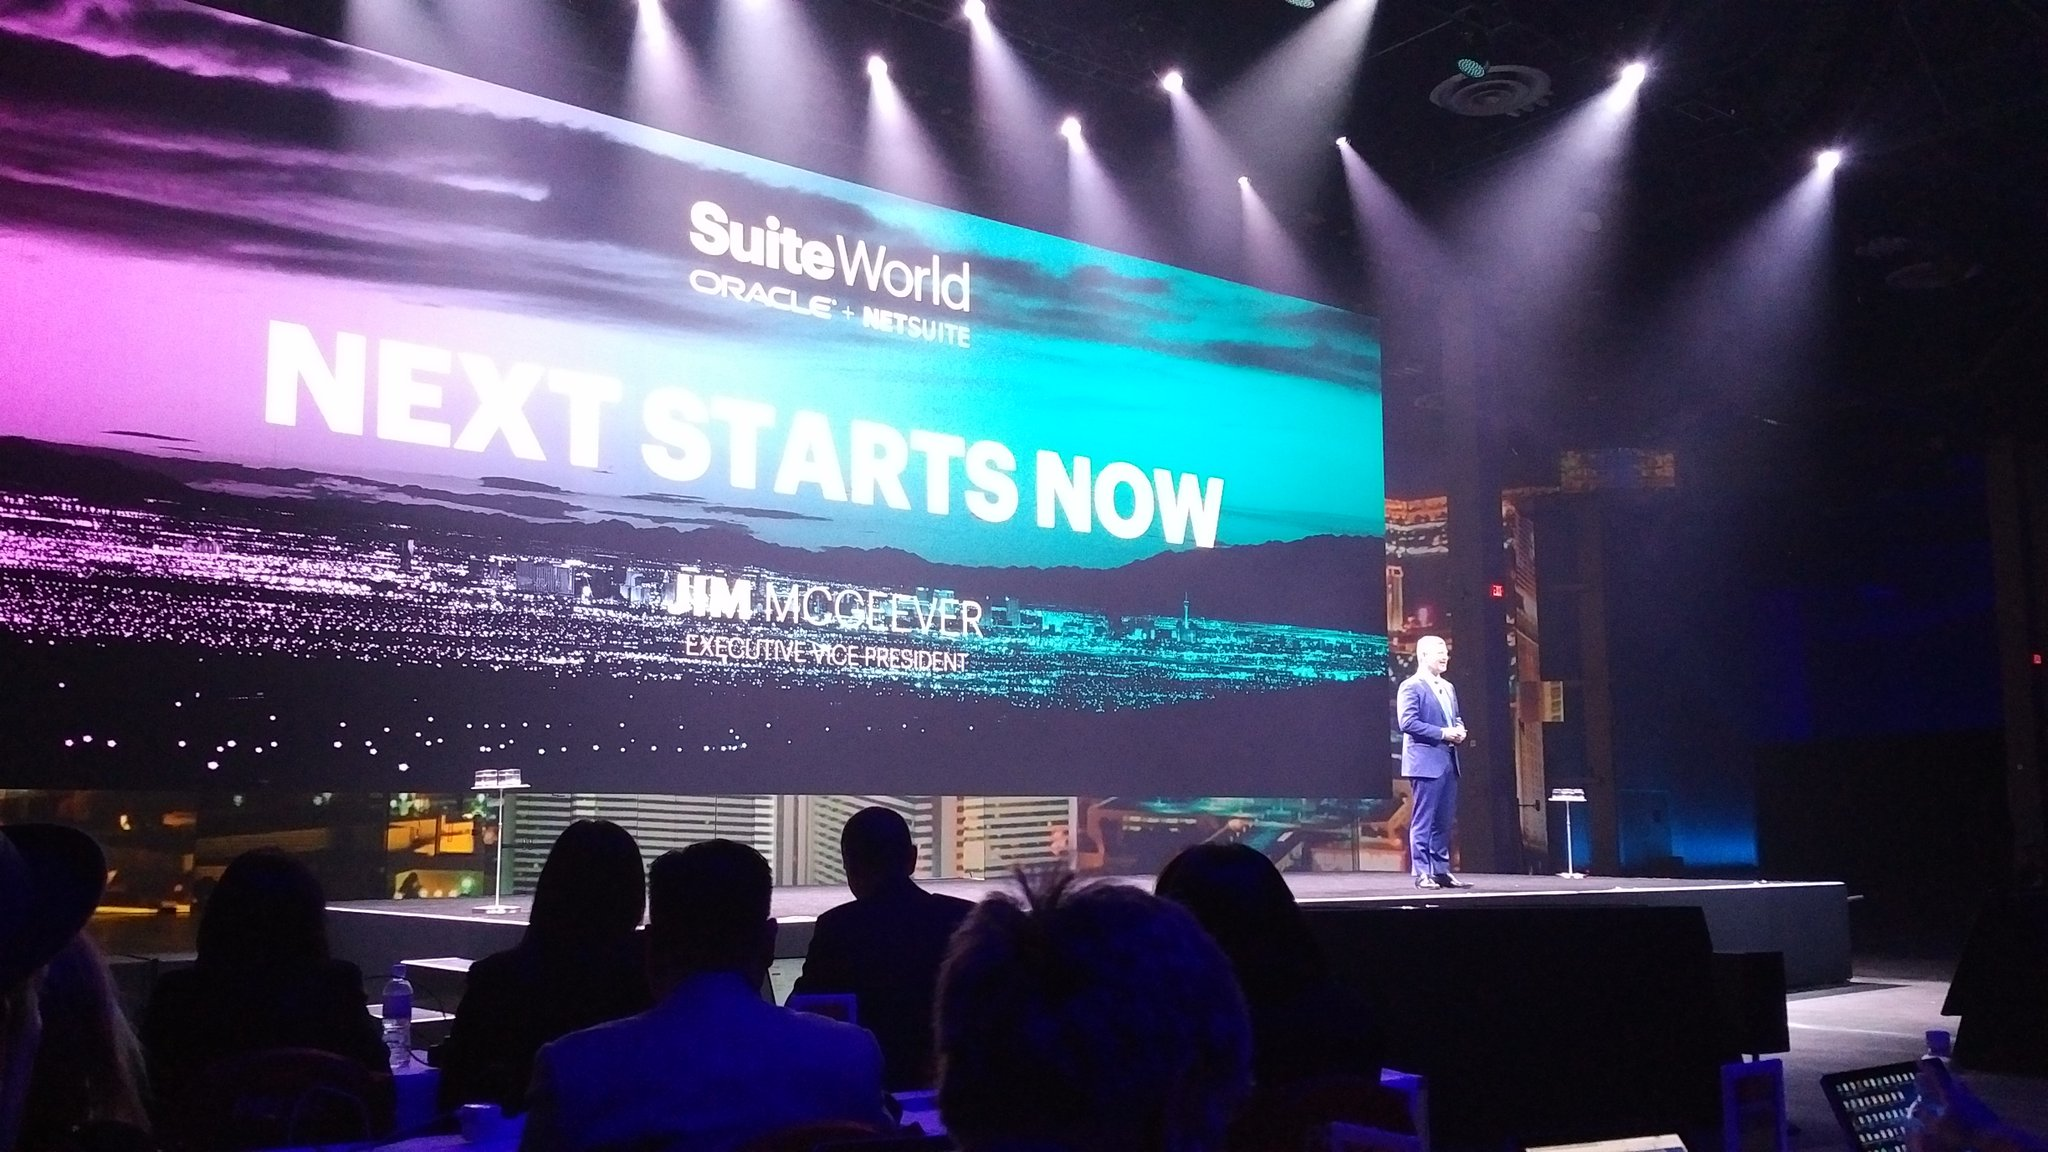 And we are off with Jim McGeever #SuiteWorld17 https://t.co/rp3nDuOKfr